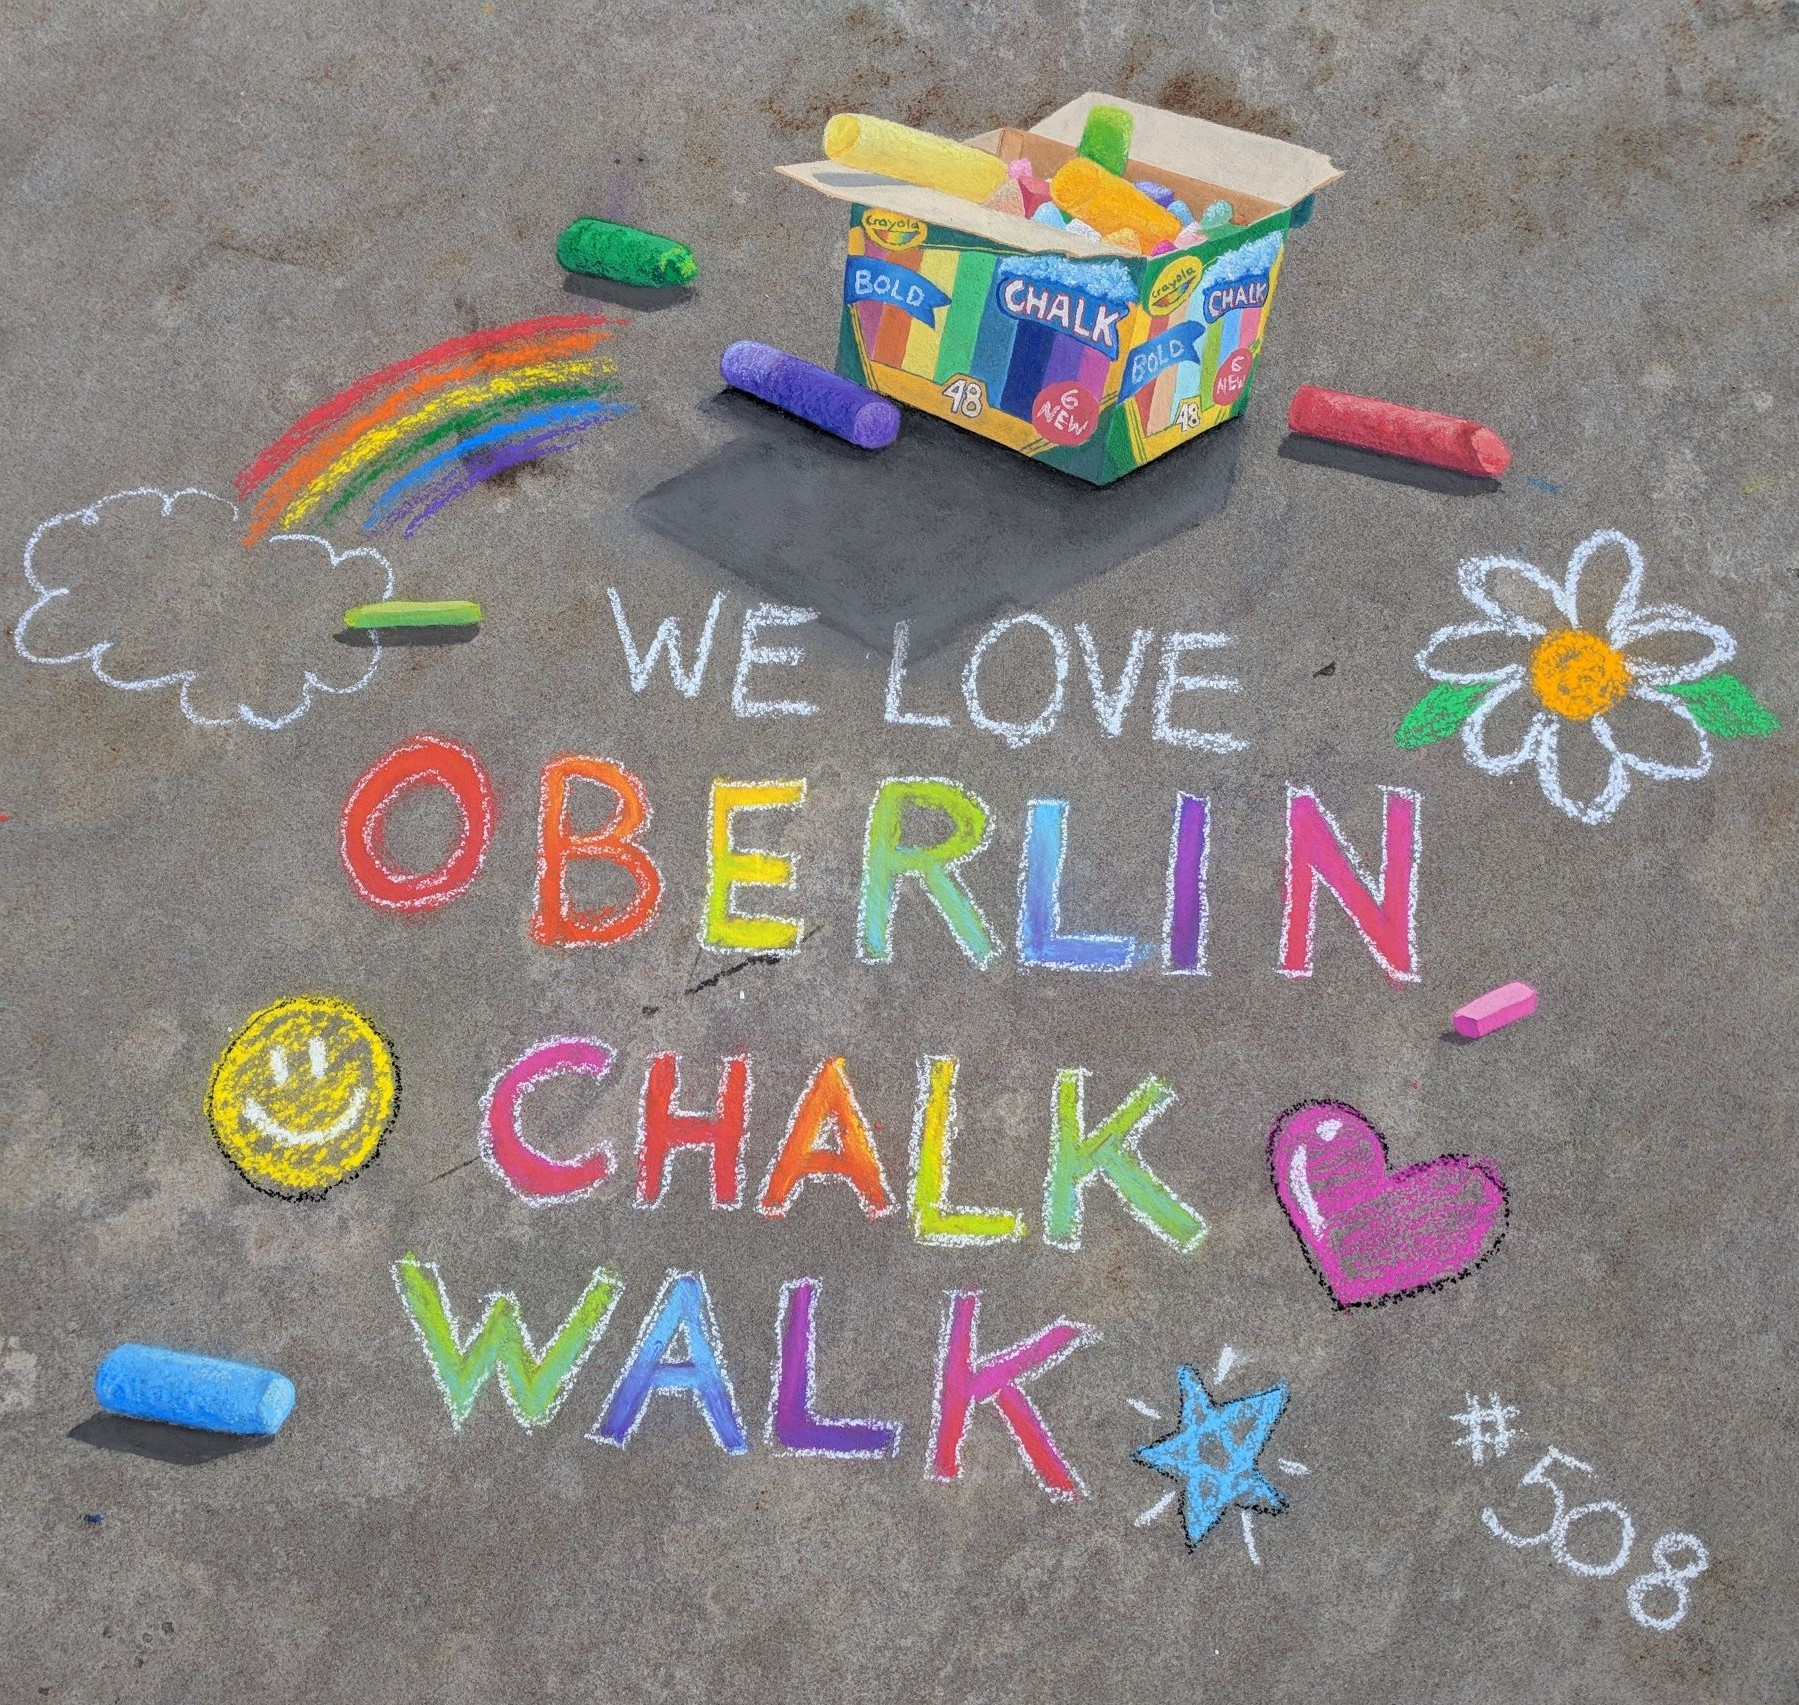 Oberlin Chalk Walk